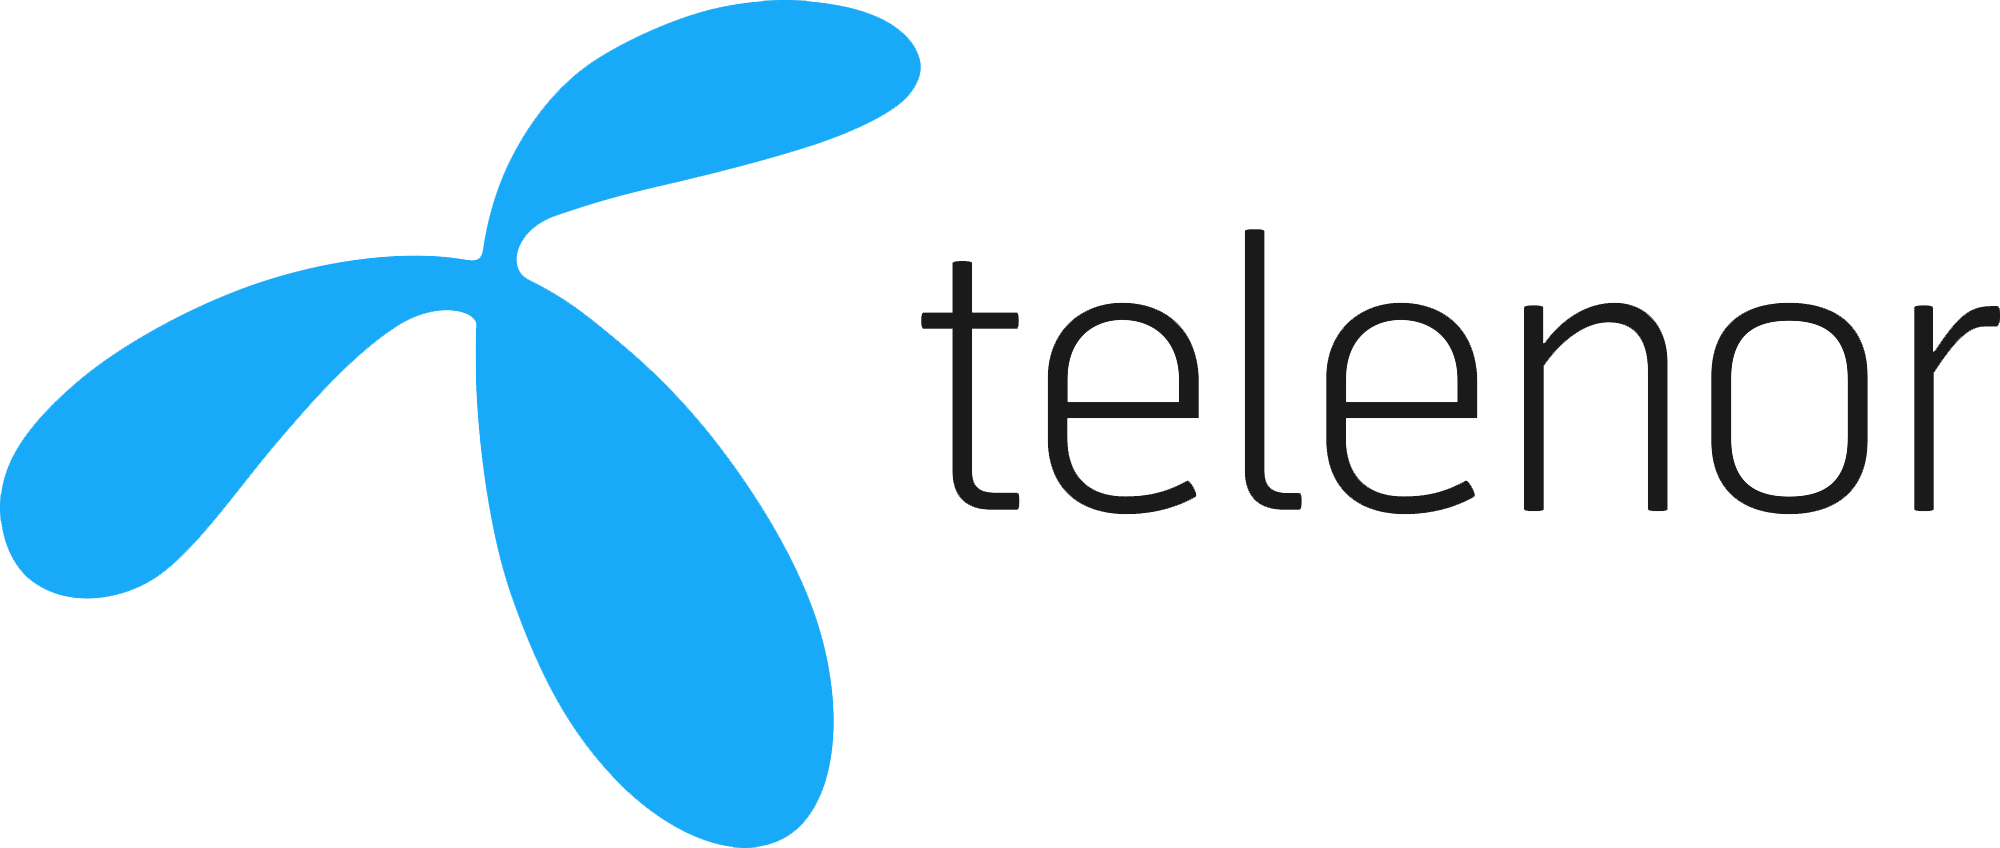 Telenor Kundpanel